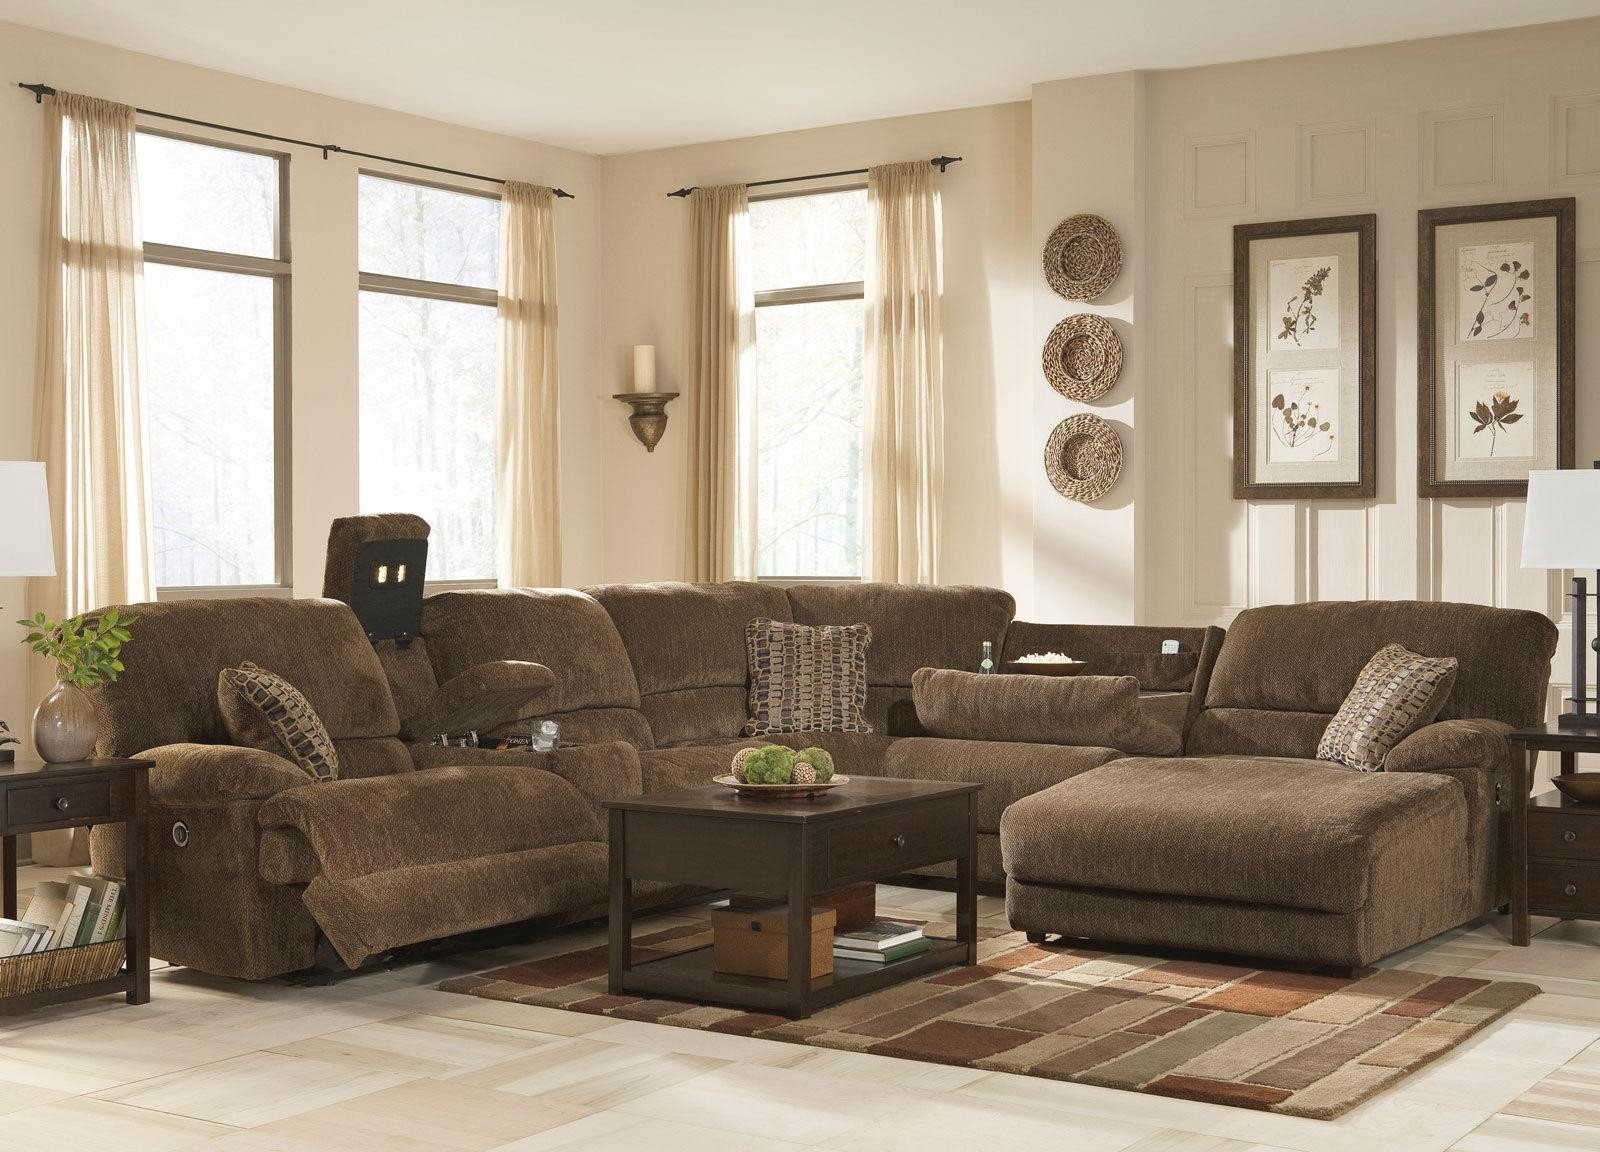 Elegant Chenille Sectional Sofa 96 For Sofas And Couches Ideas Regarding Chenille Sectionals (View 5 of 15)